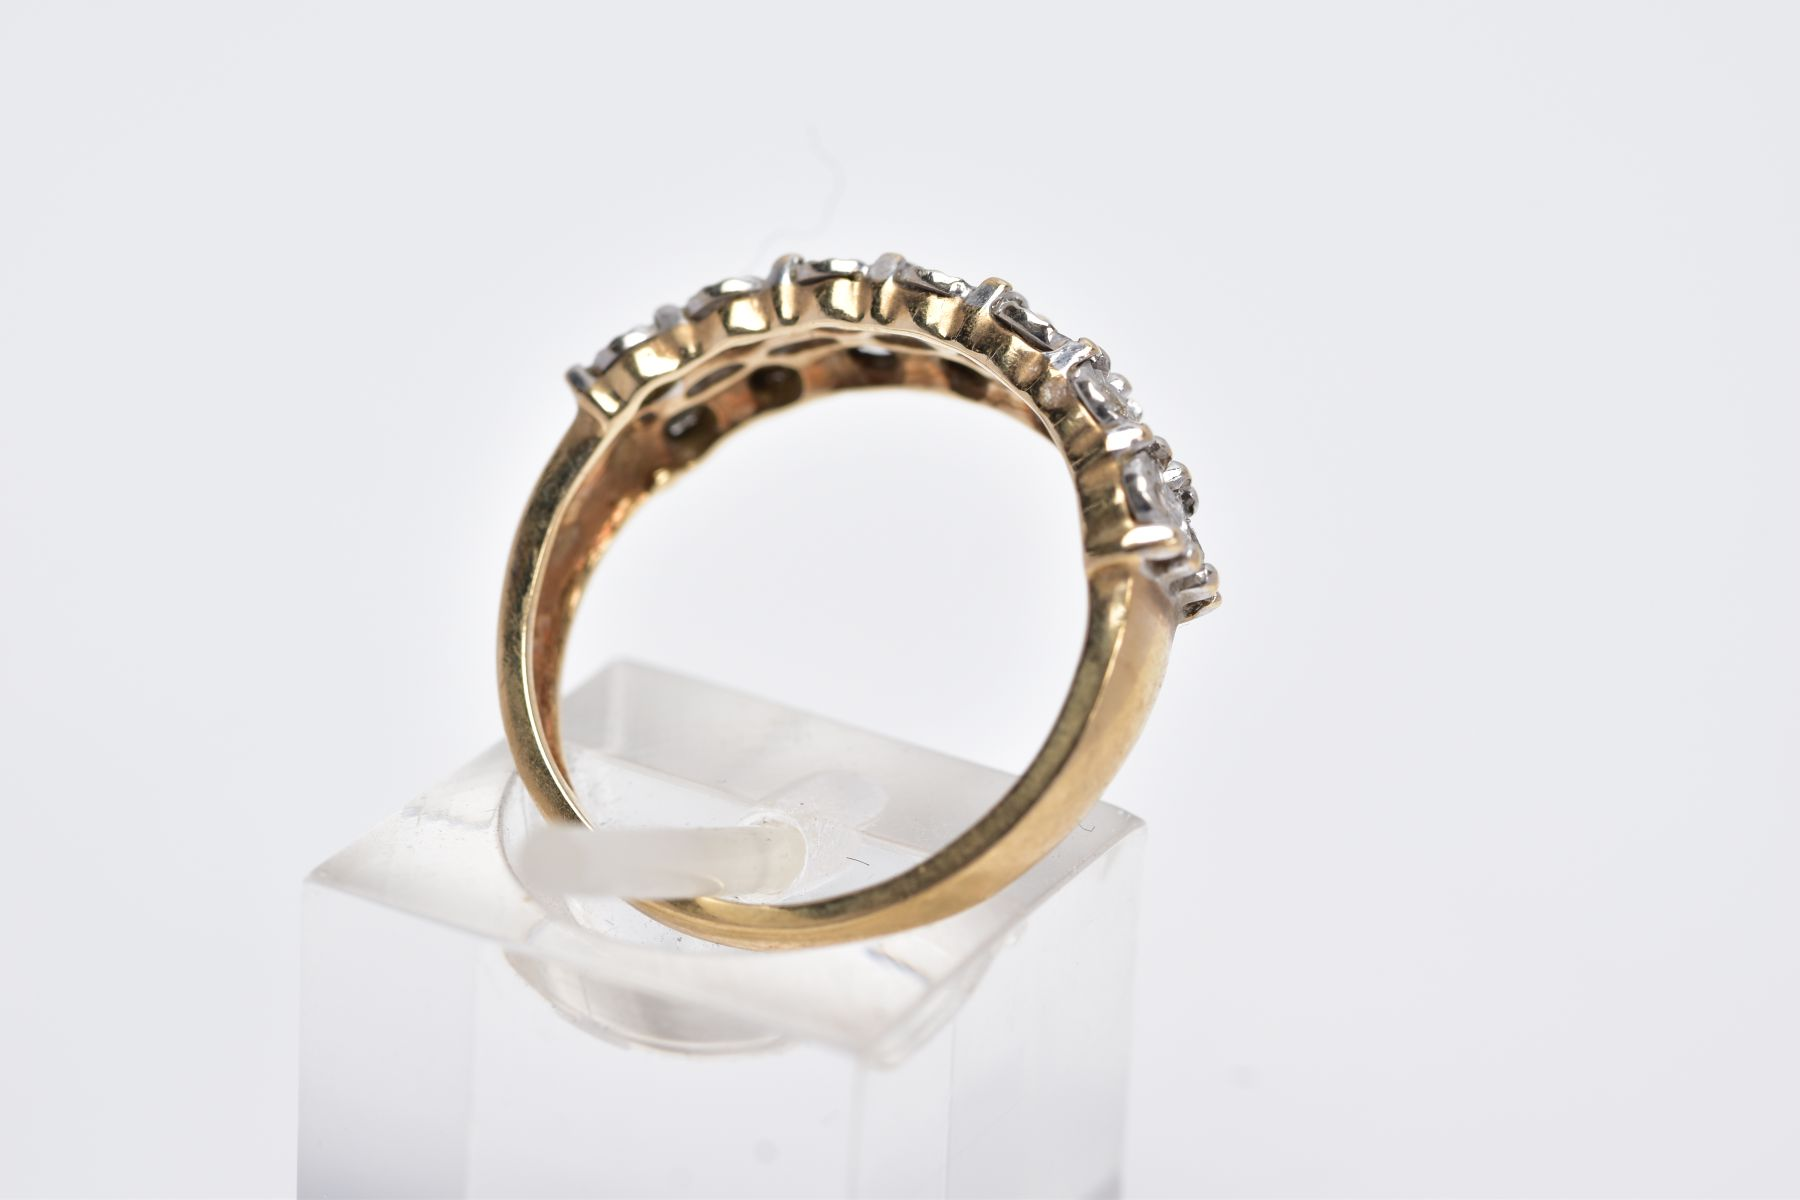 A 9CT GOLD DIAMOND RING, designed with two rows of illusion set, round brilliant cut diamonds, - Image 3 of 4